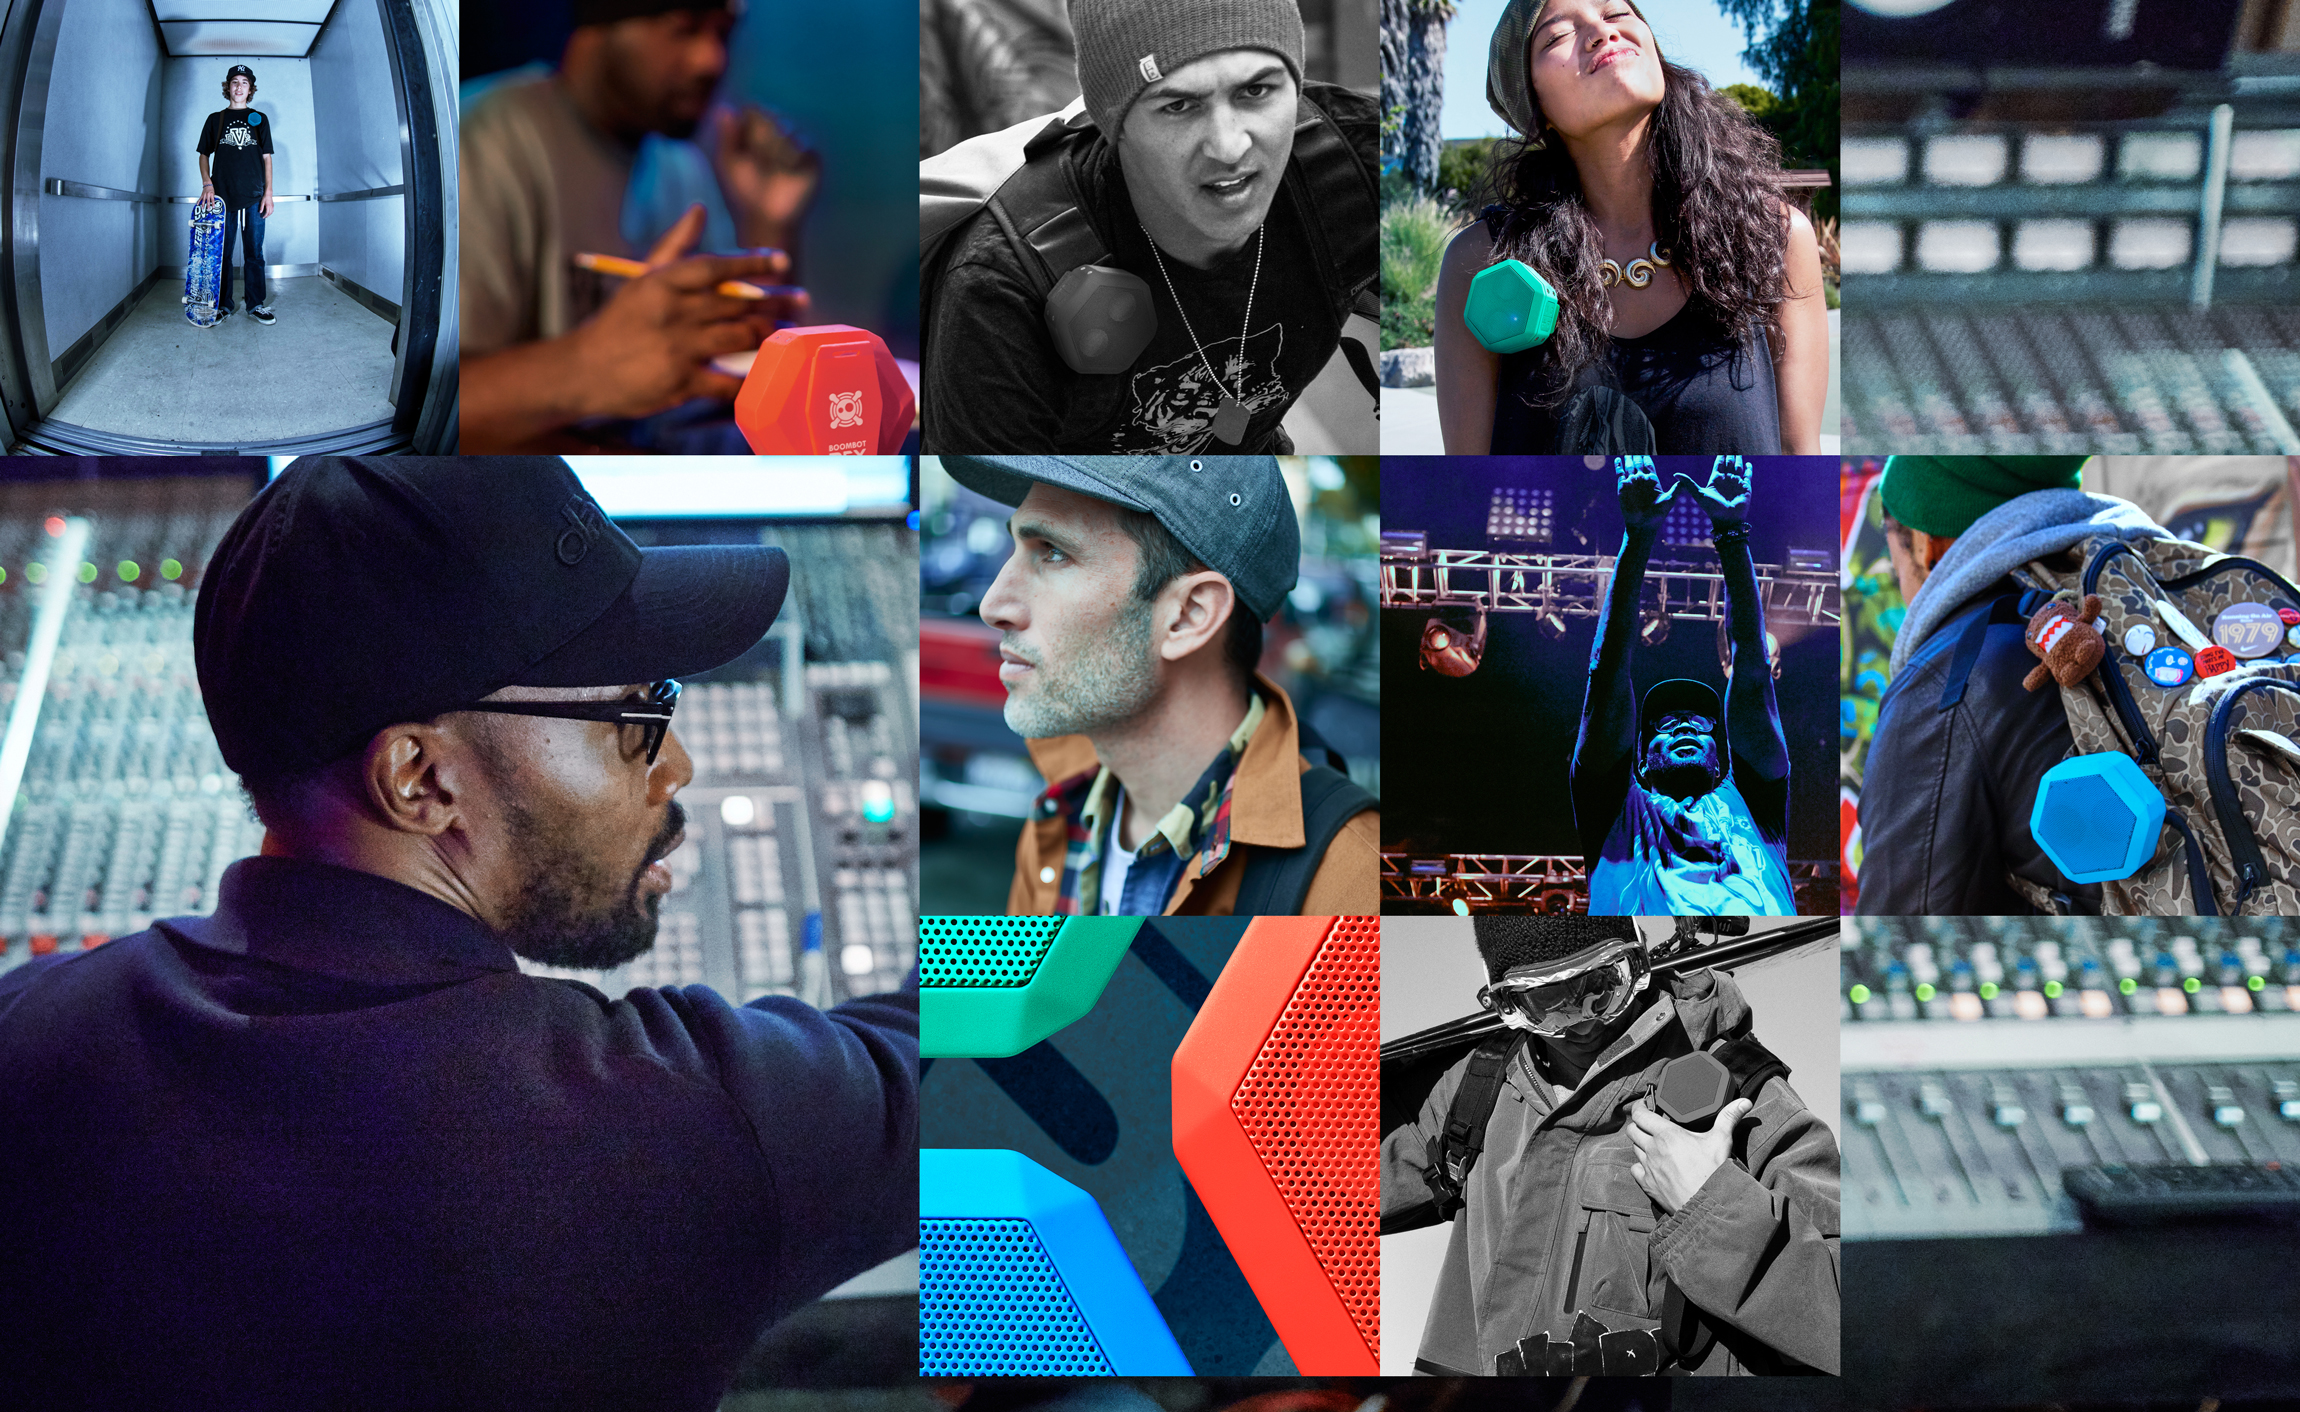 Collage of many different people using boombotix speakers in different settings